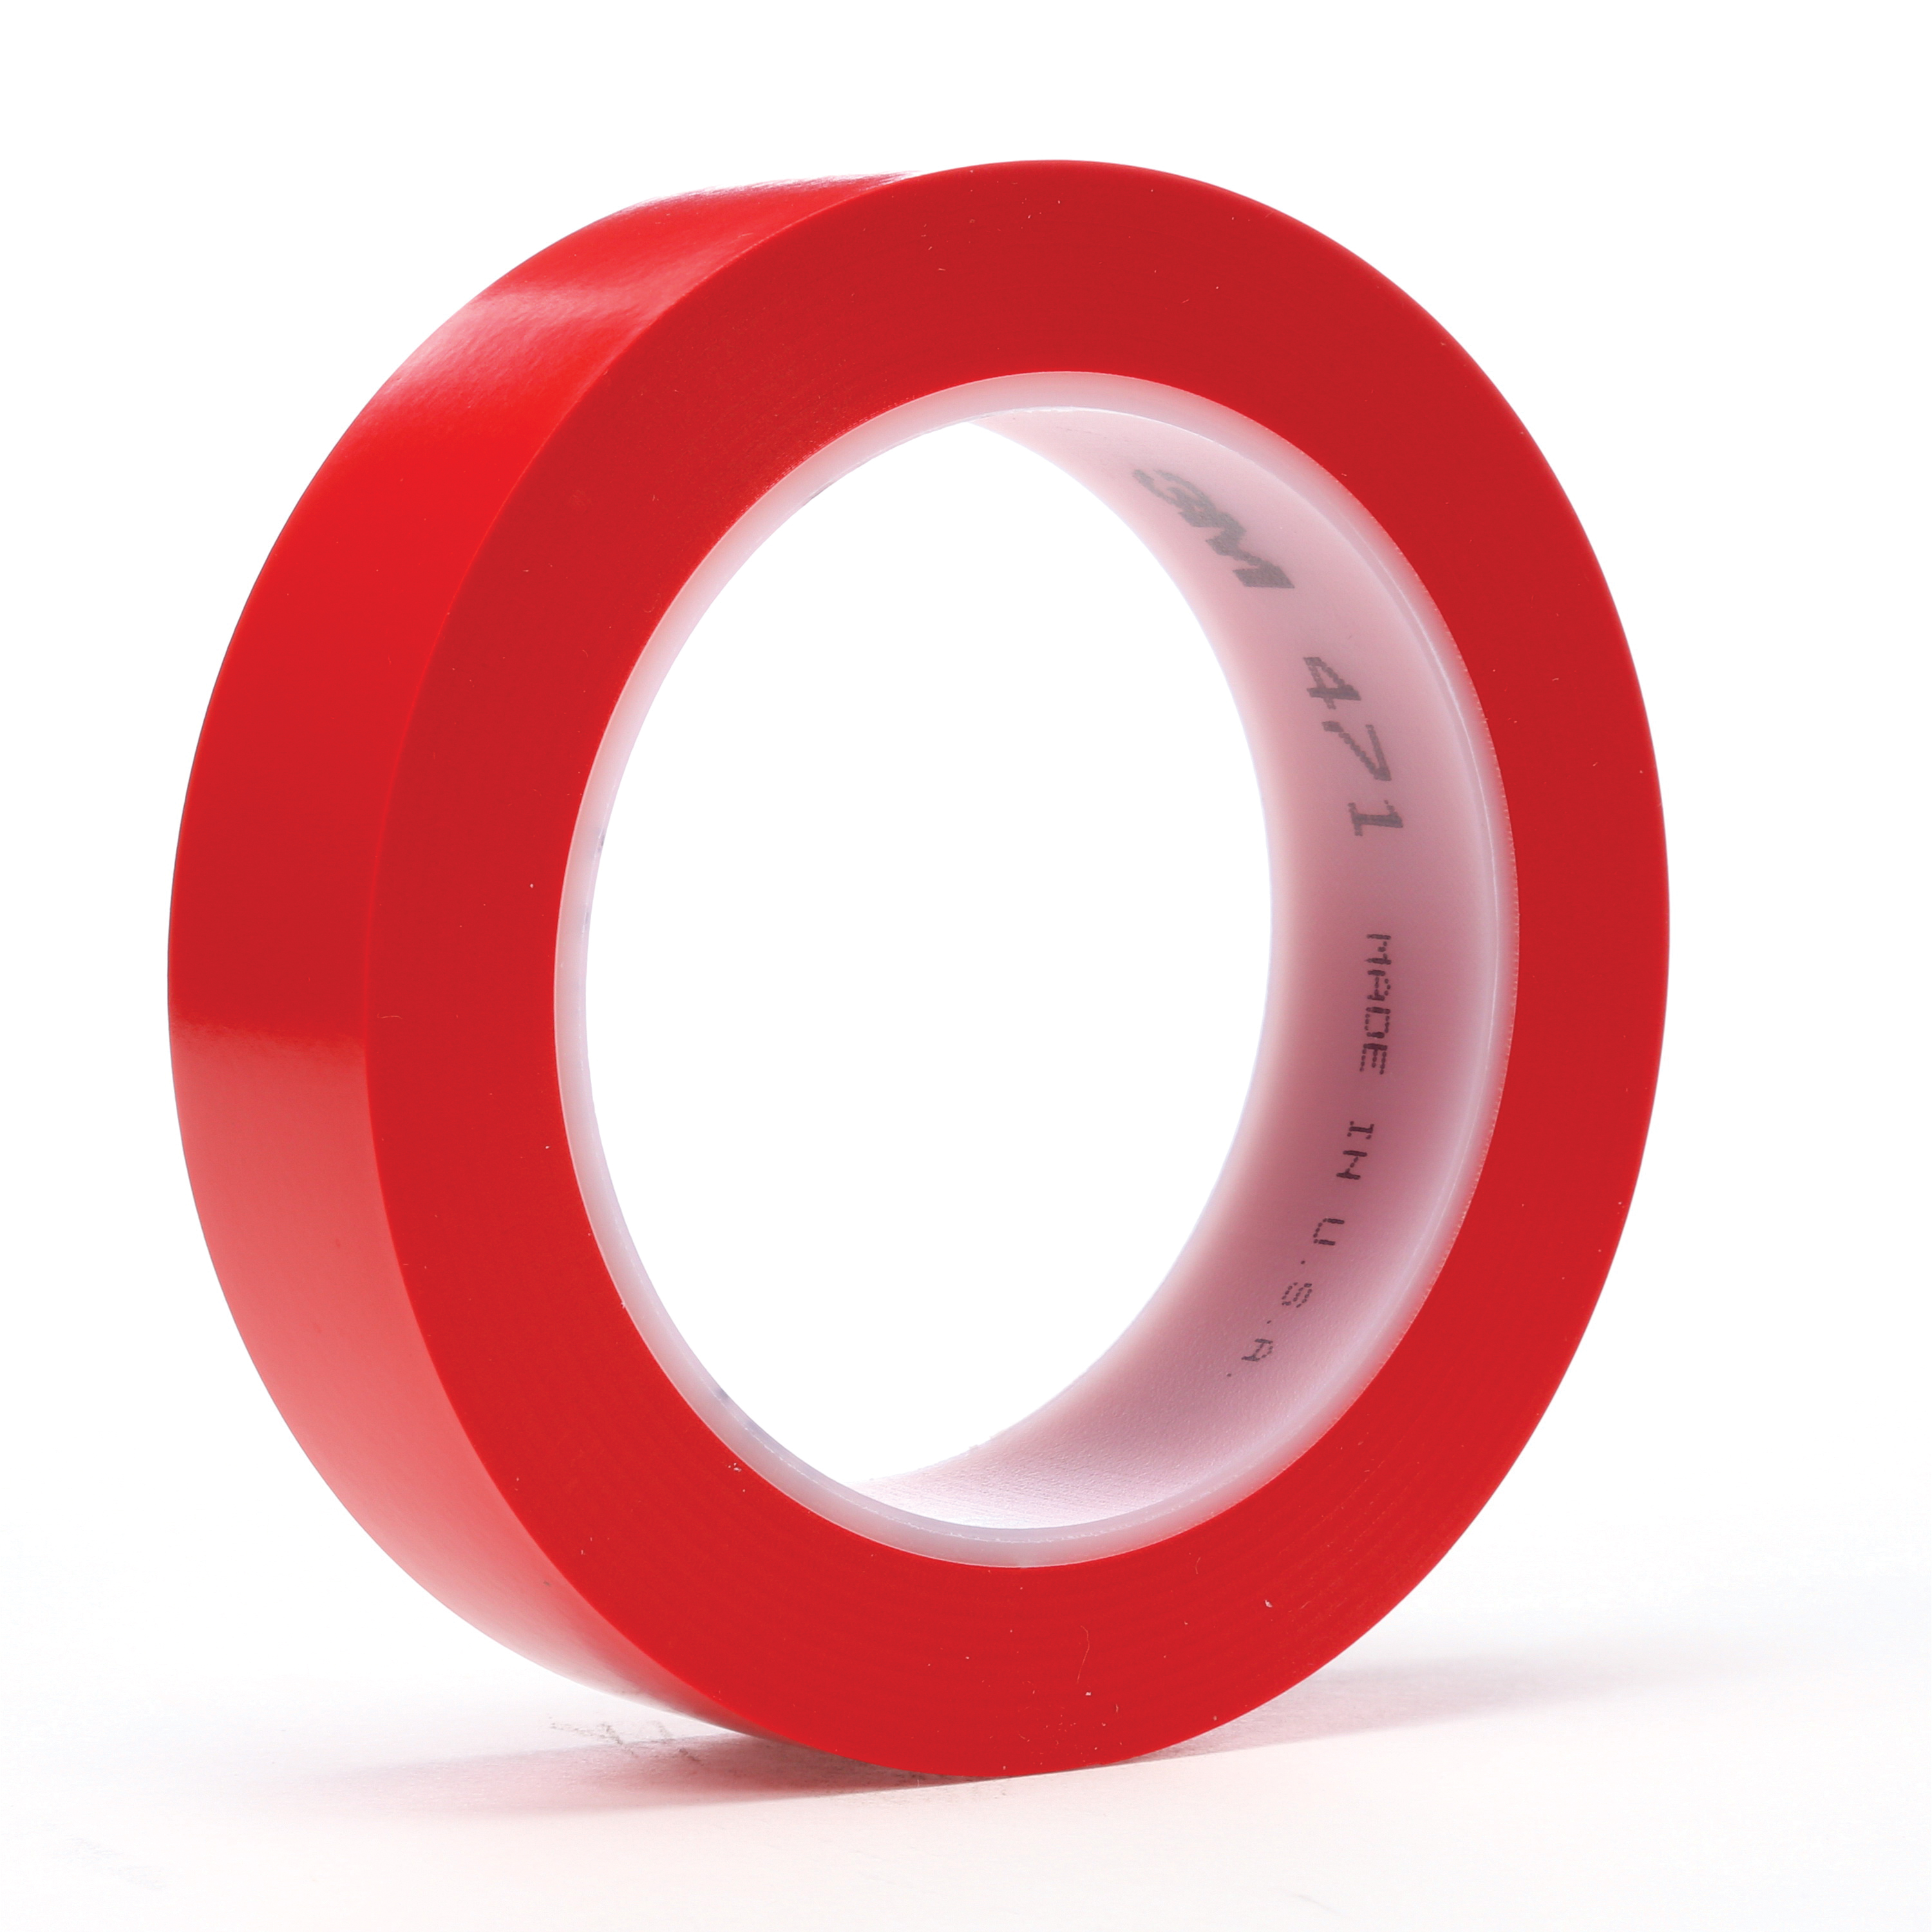 3M™ 021200-03107 High Performance Vinyl Tape, 36 yd L x 1 in W, 5.2 mil THK, Rubber Adhesive, Vinyl Backing, Red